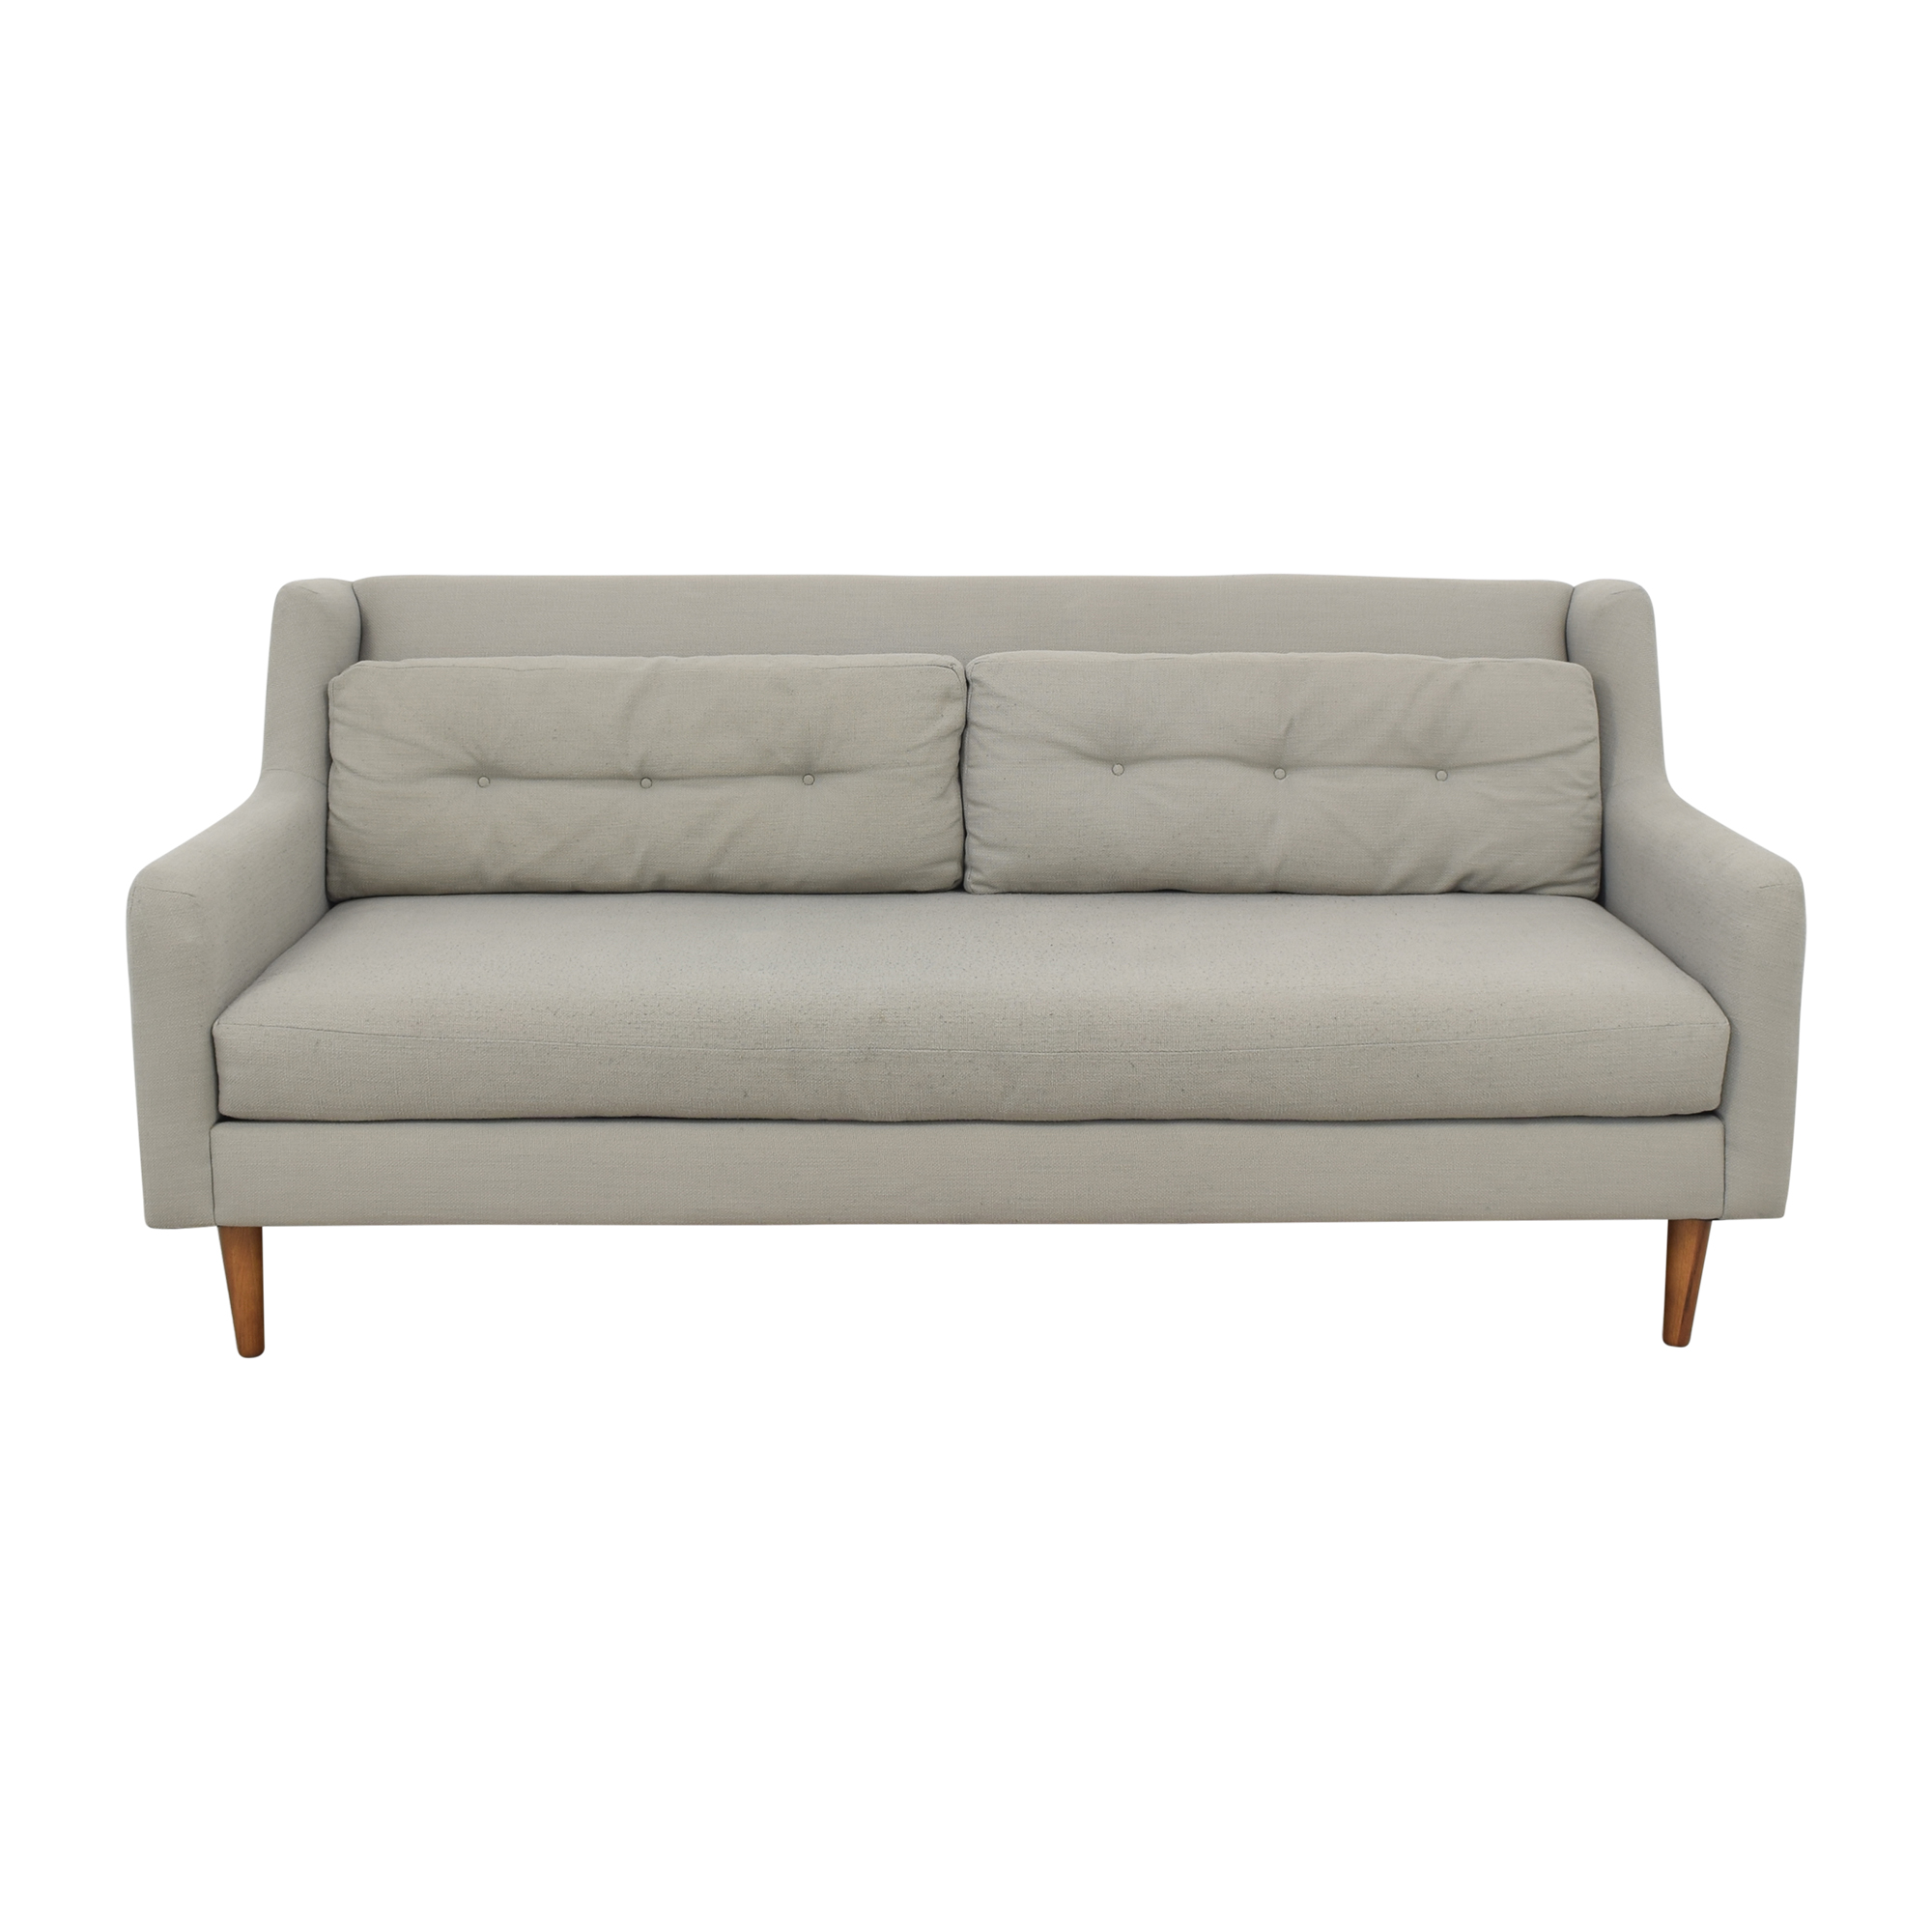 buy West Elm West Elm Crosby Sofa online